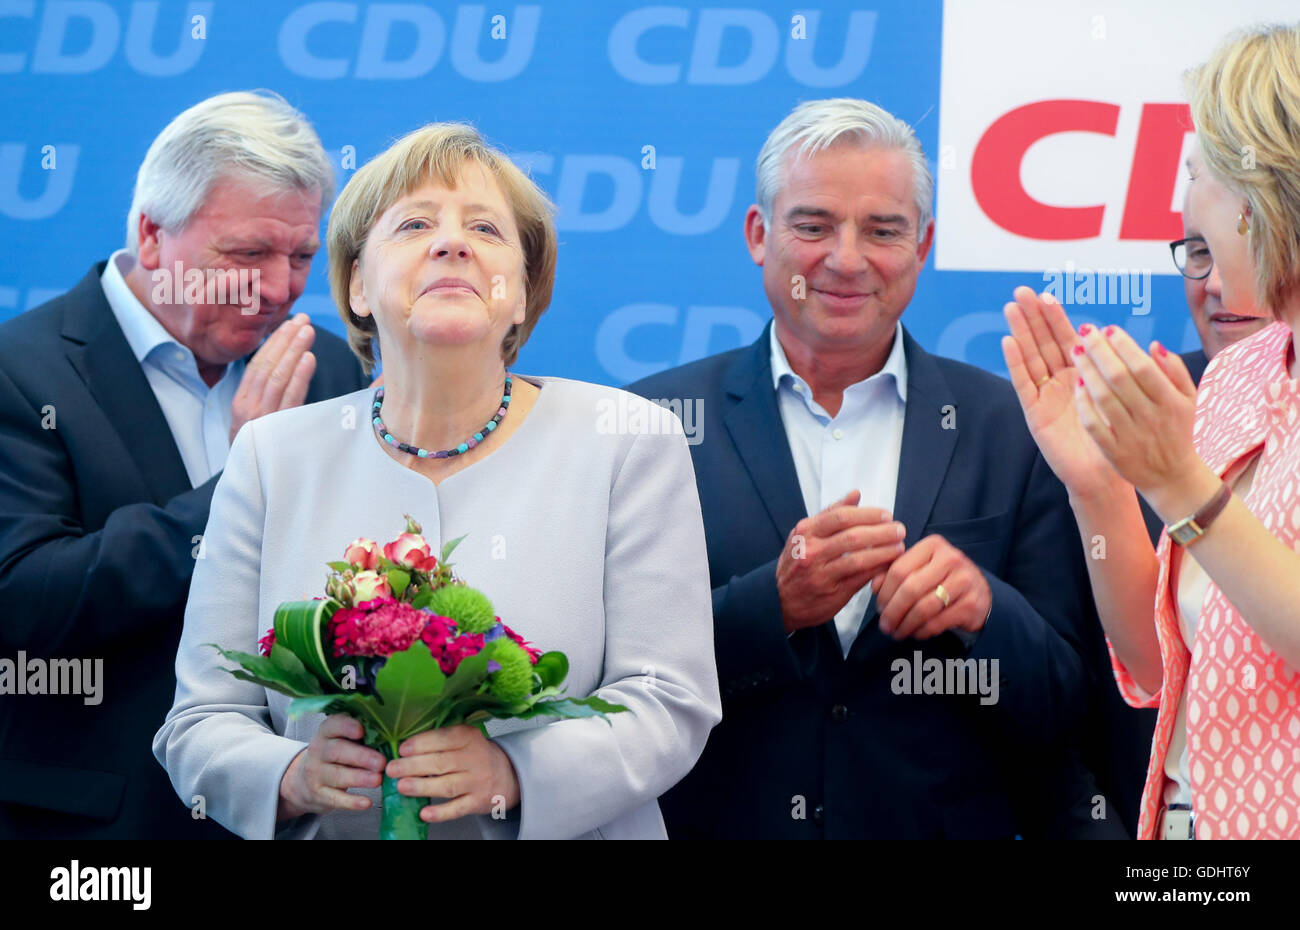 Berlin, Germany. 18th July, 2016. Hessian State Premier Volker Bouffier (L), State Interior Minister of Baden-Wuerttemberg - Stock Image